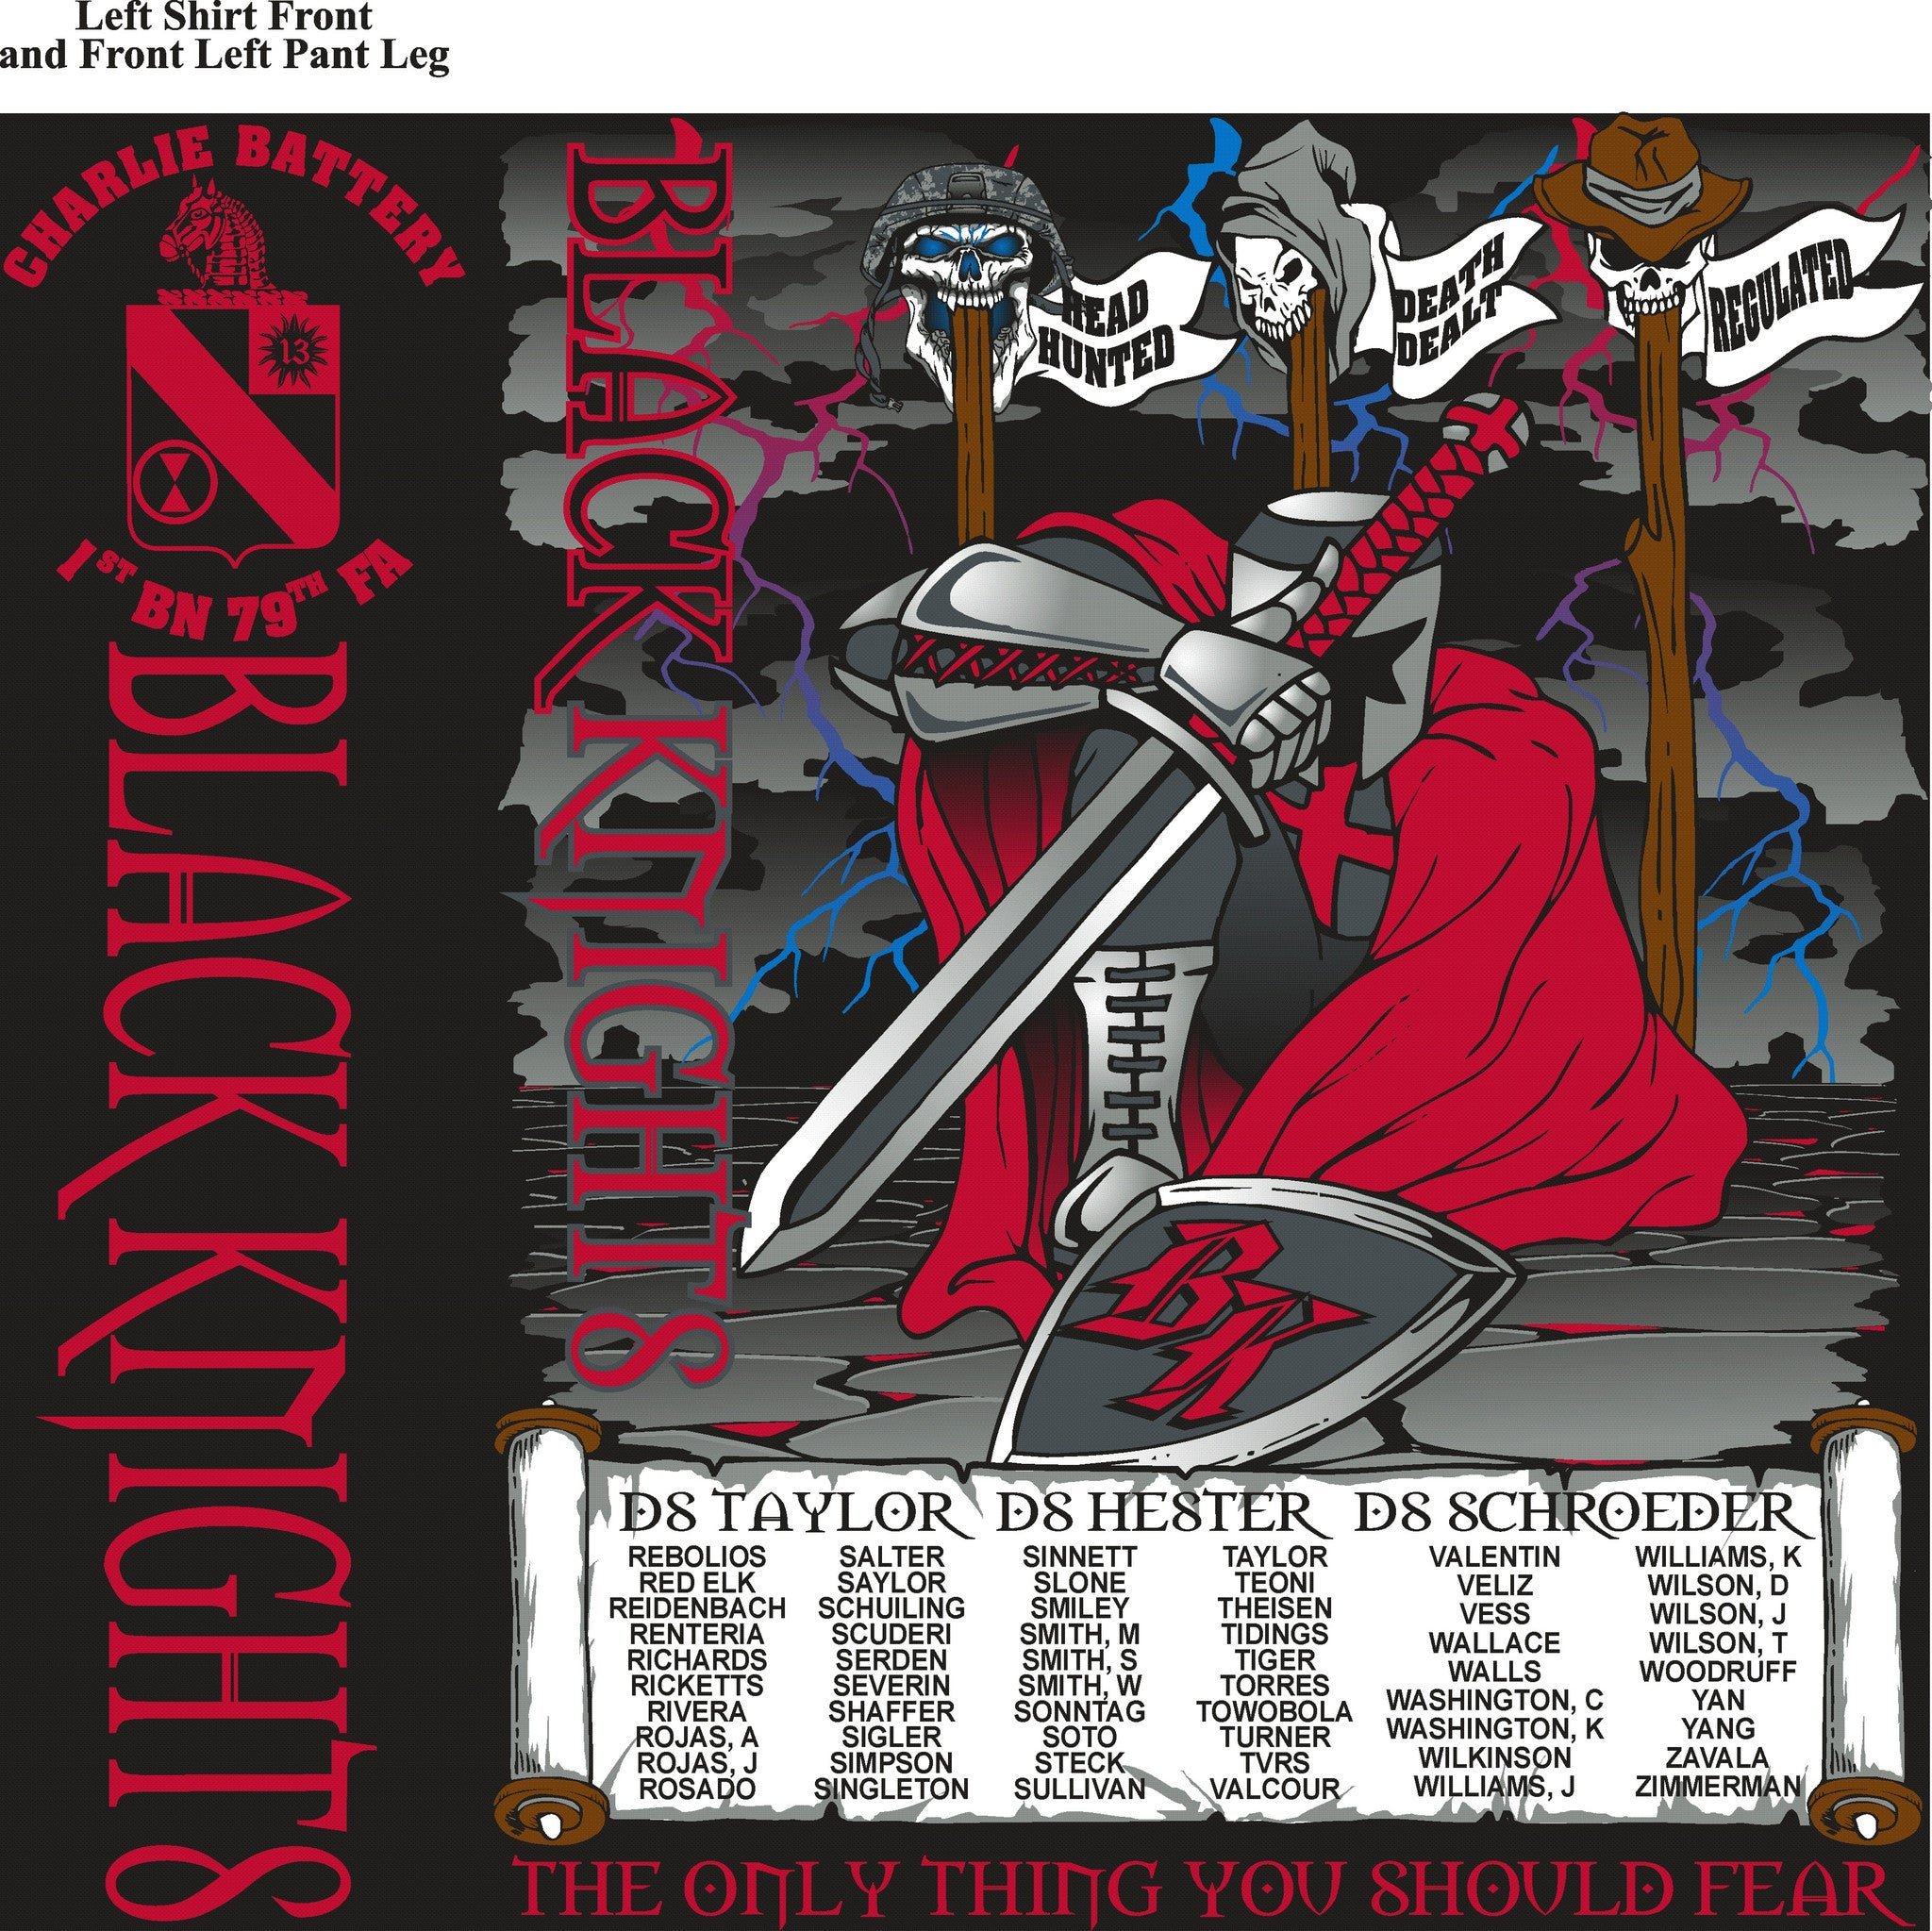 PLATOON SHIRTS (digital) CHARLE 1st 79th BLACK KNIGHTS OCT 2015